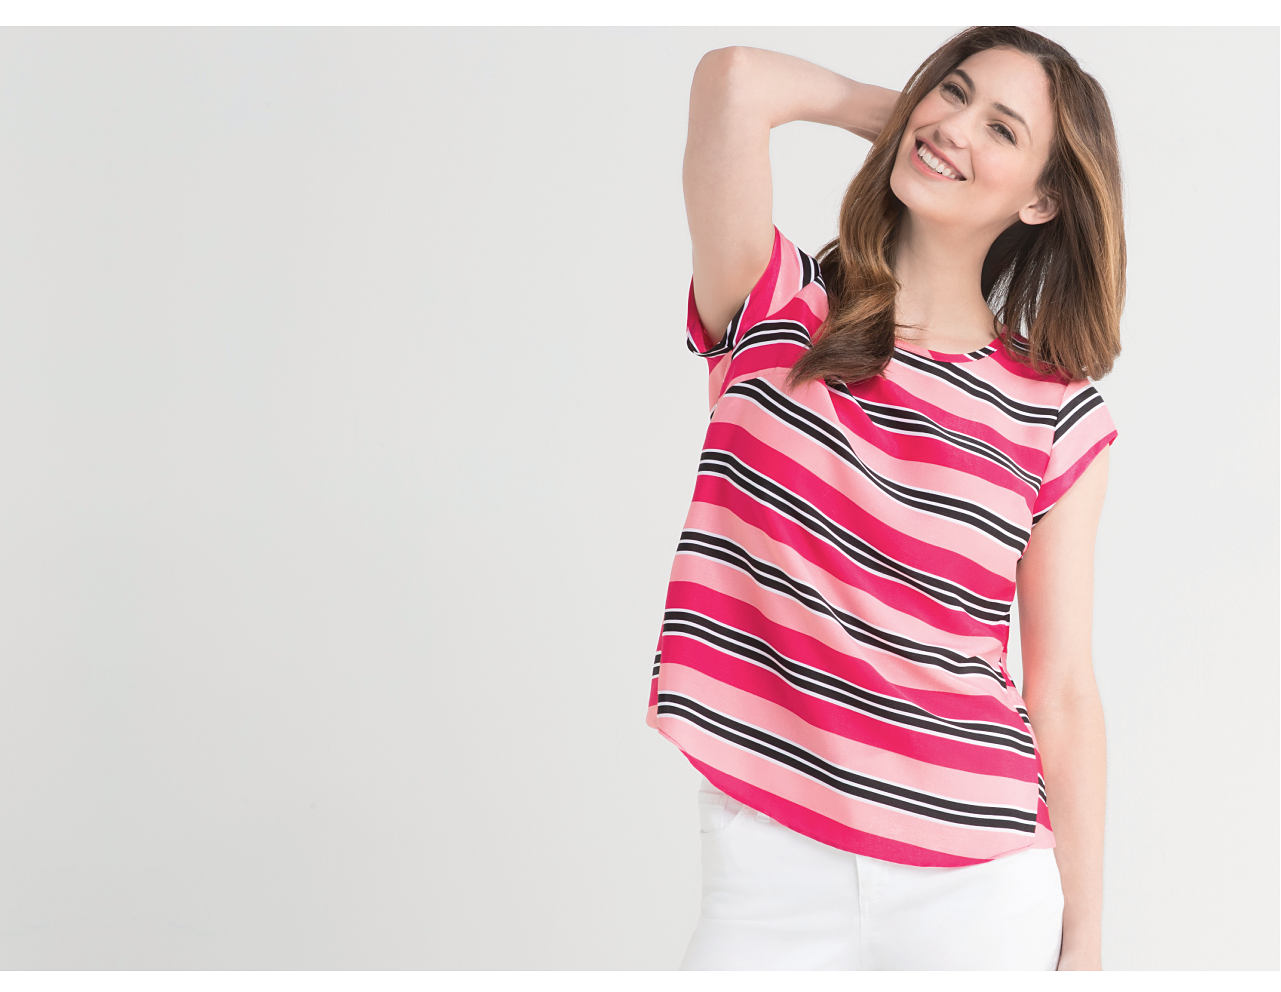 woman wearing a pink and black striped top